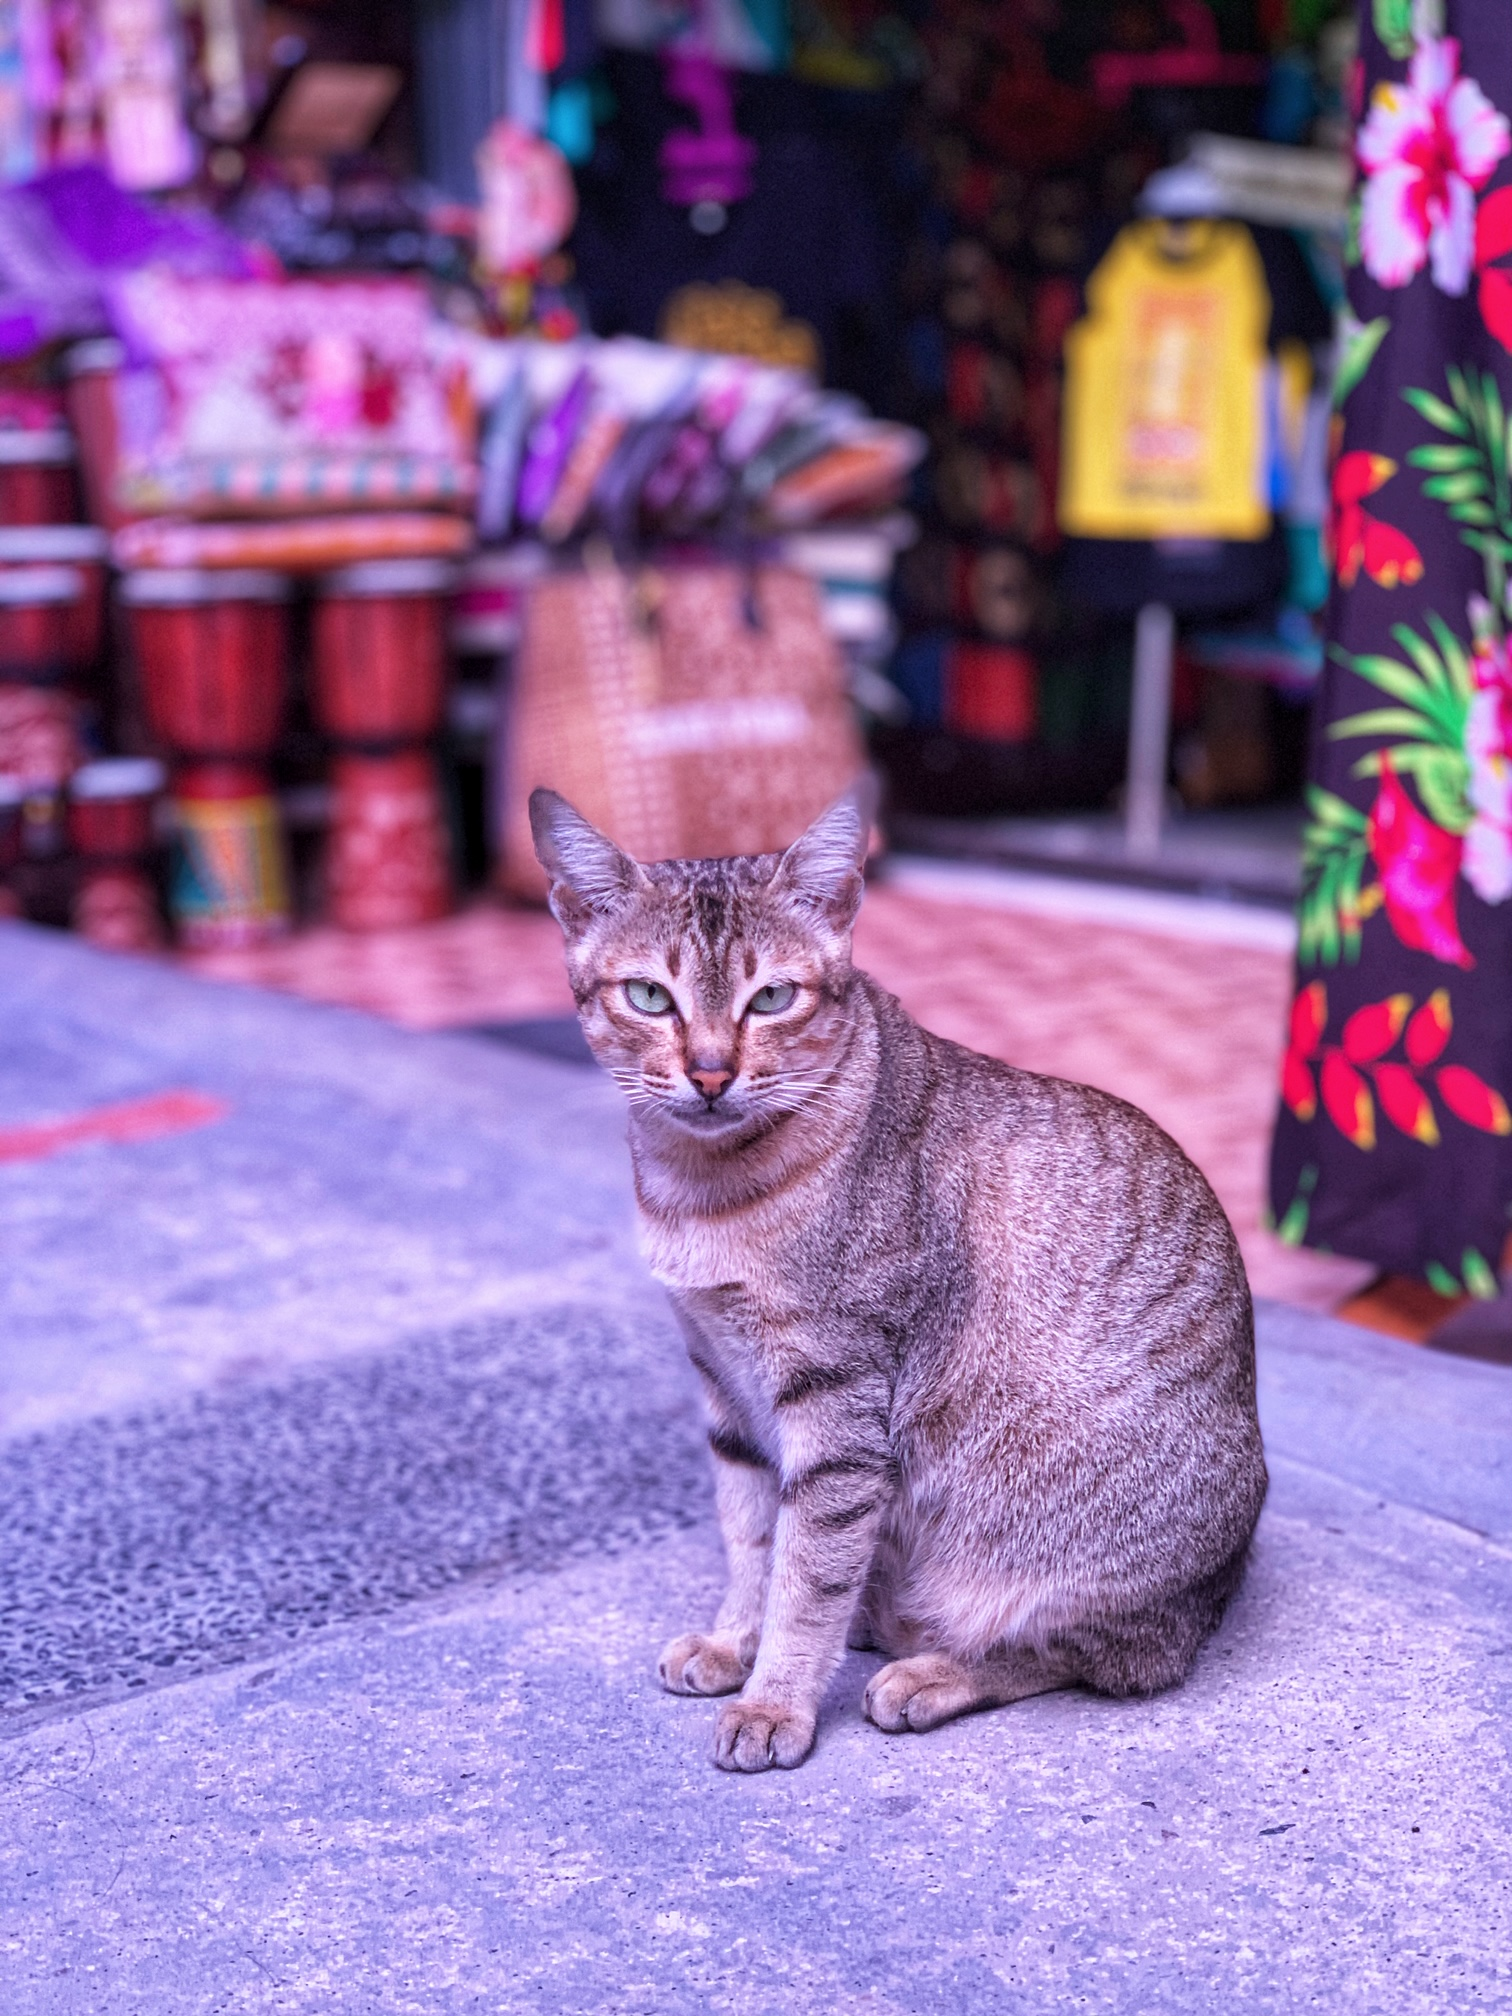 Pelabuhan Tomok Market cat Indonesia